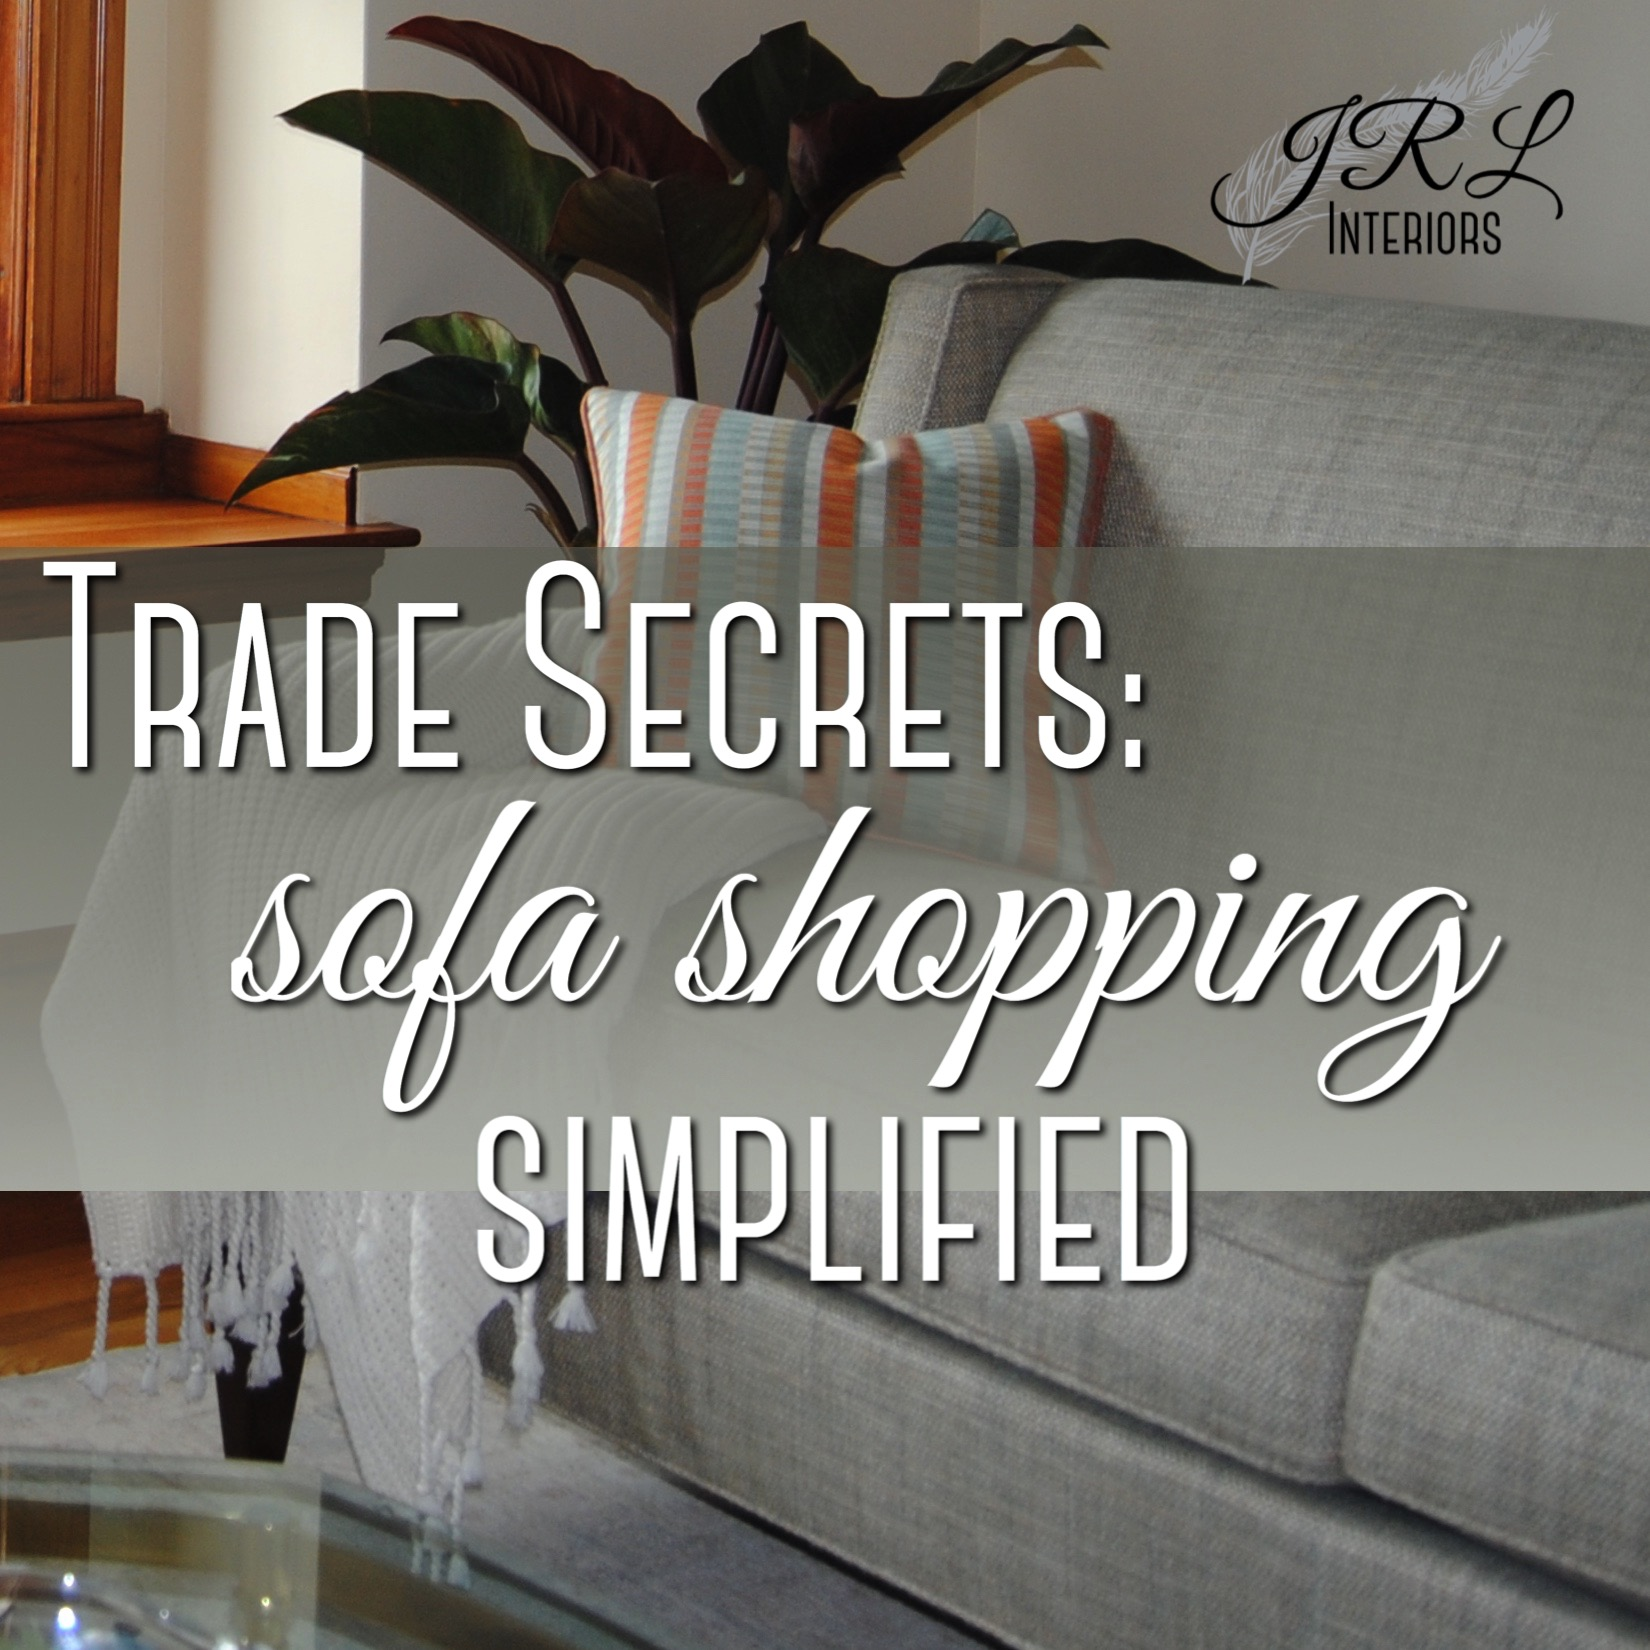 trade-secrets.-sofa-shopping-simplified.jpg